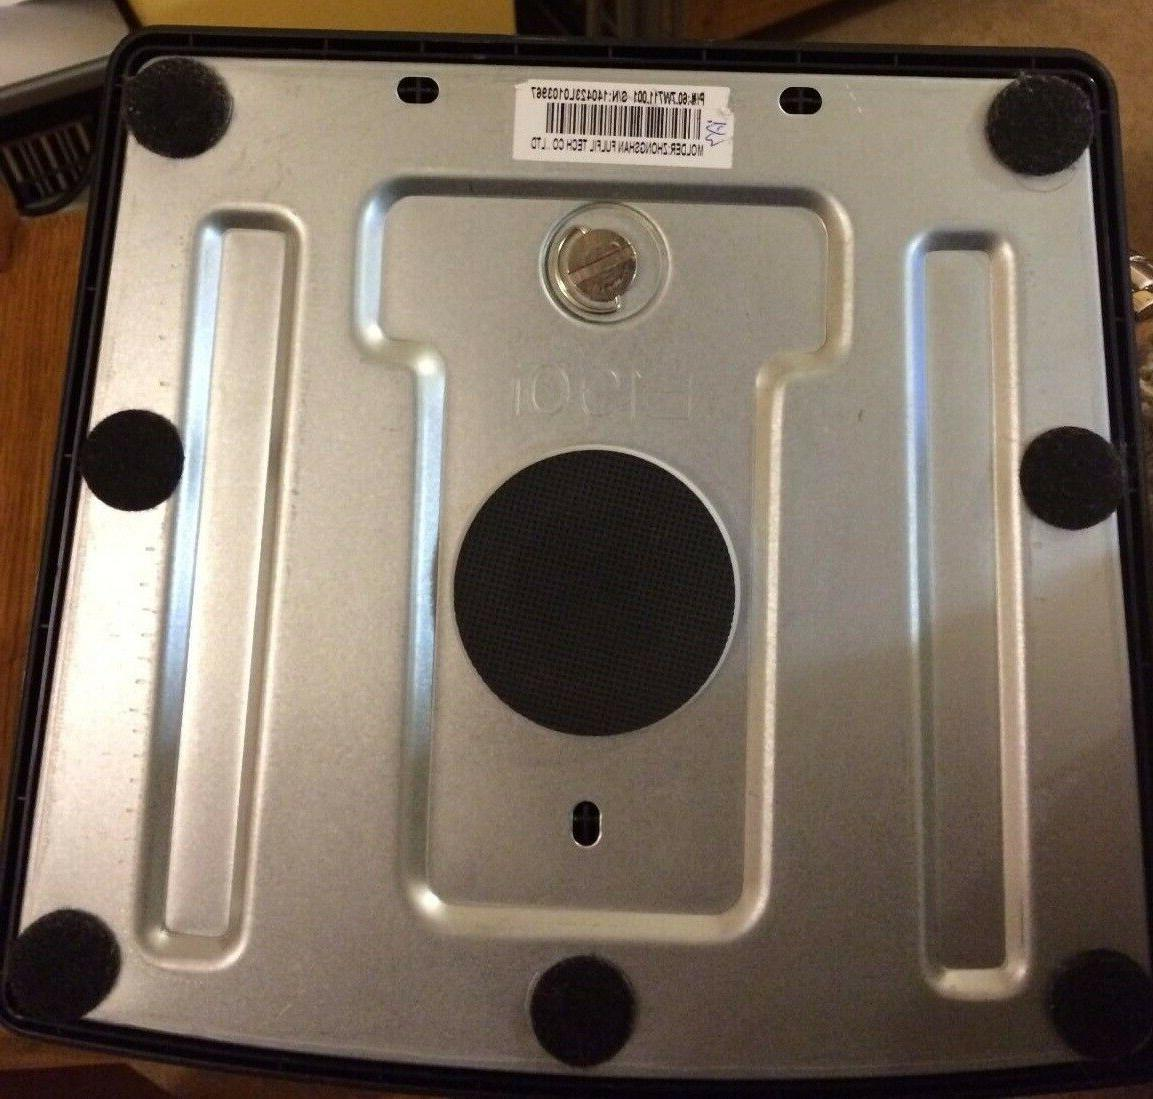 Monitor Stand Adjustable Height, & Rotate Genuine